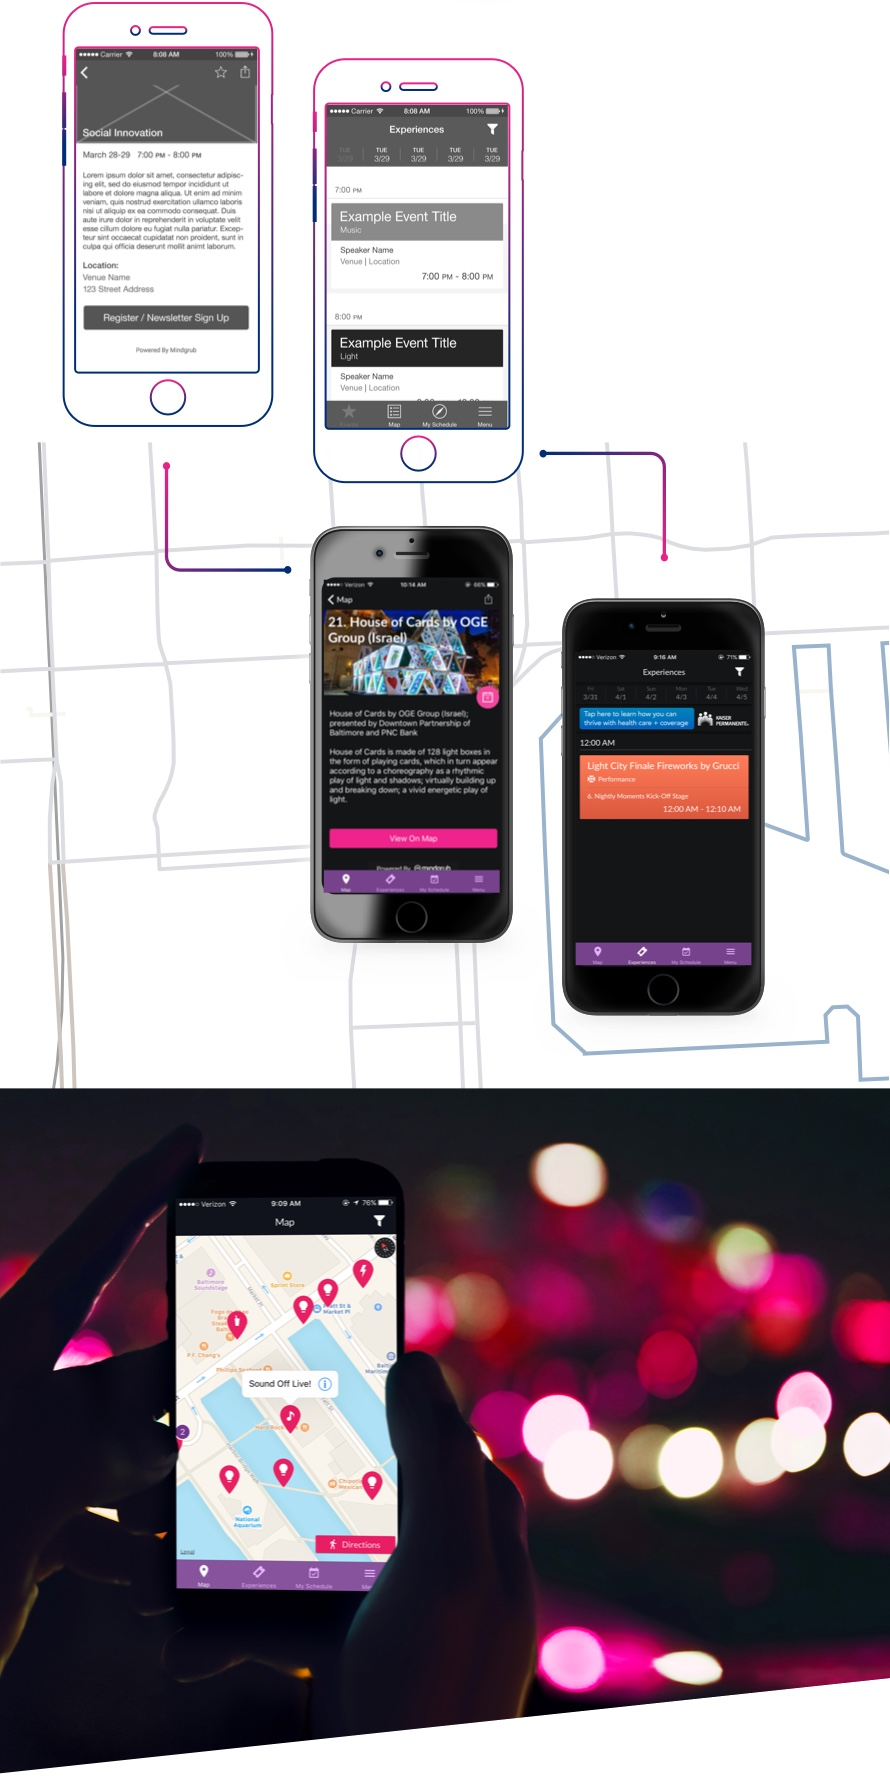 4 different displays of the Light City Baltimore app